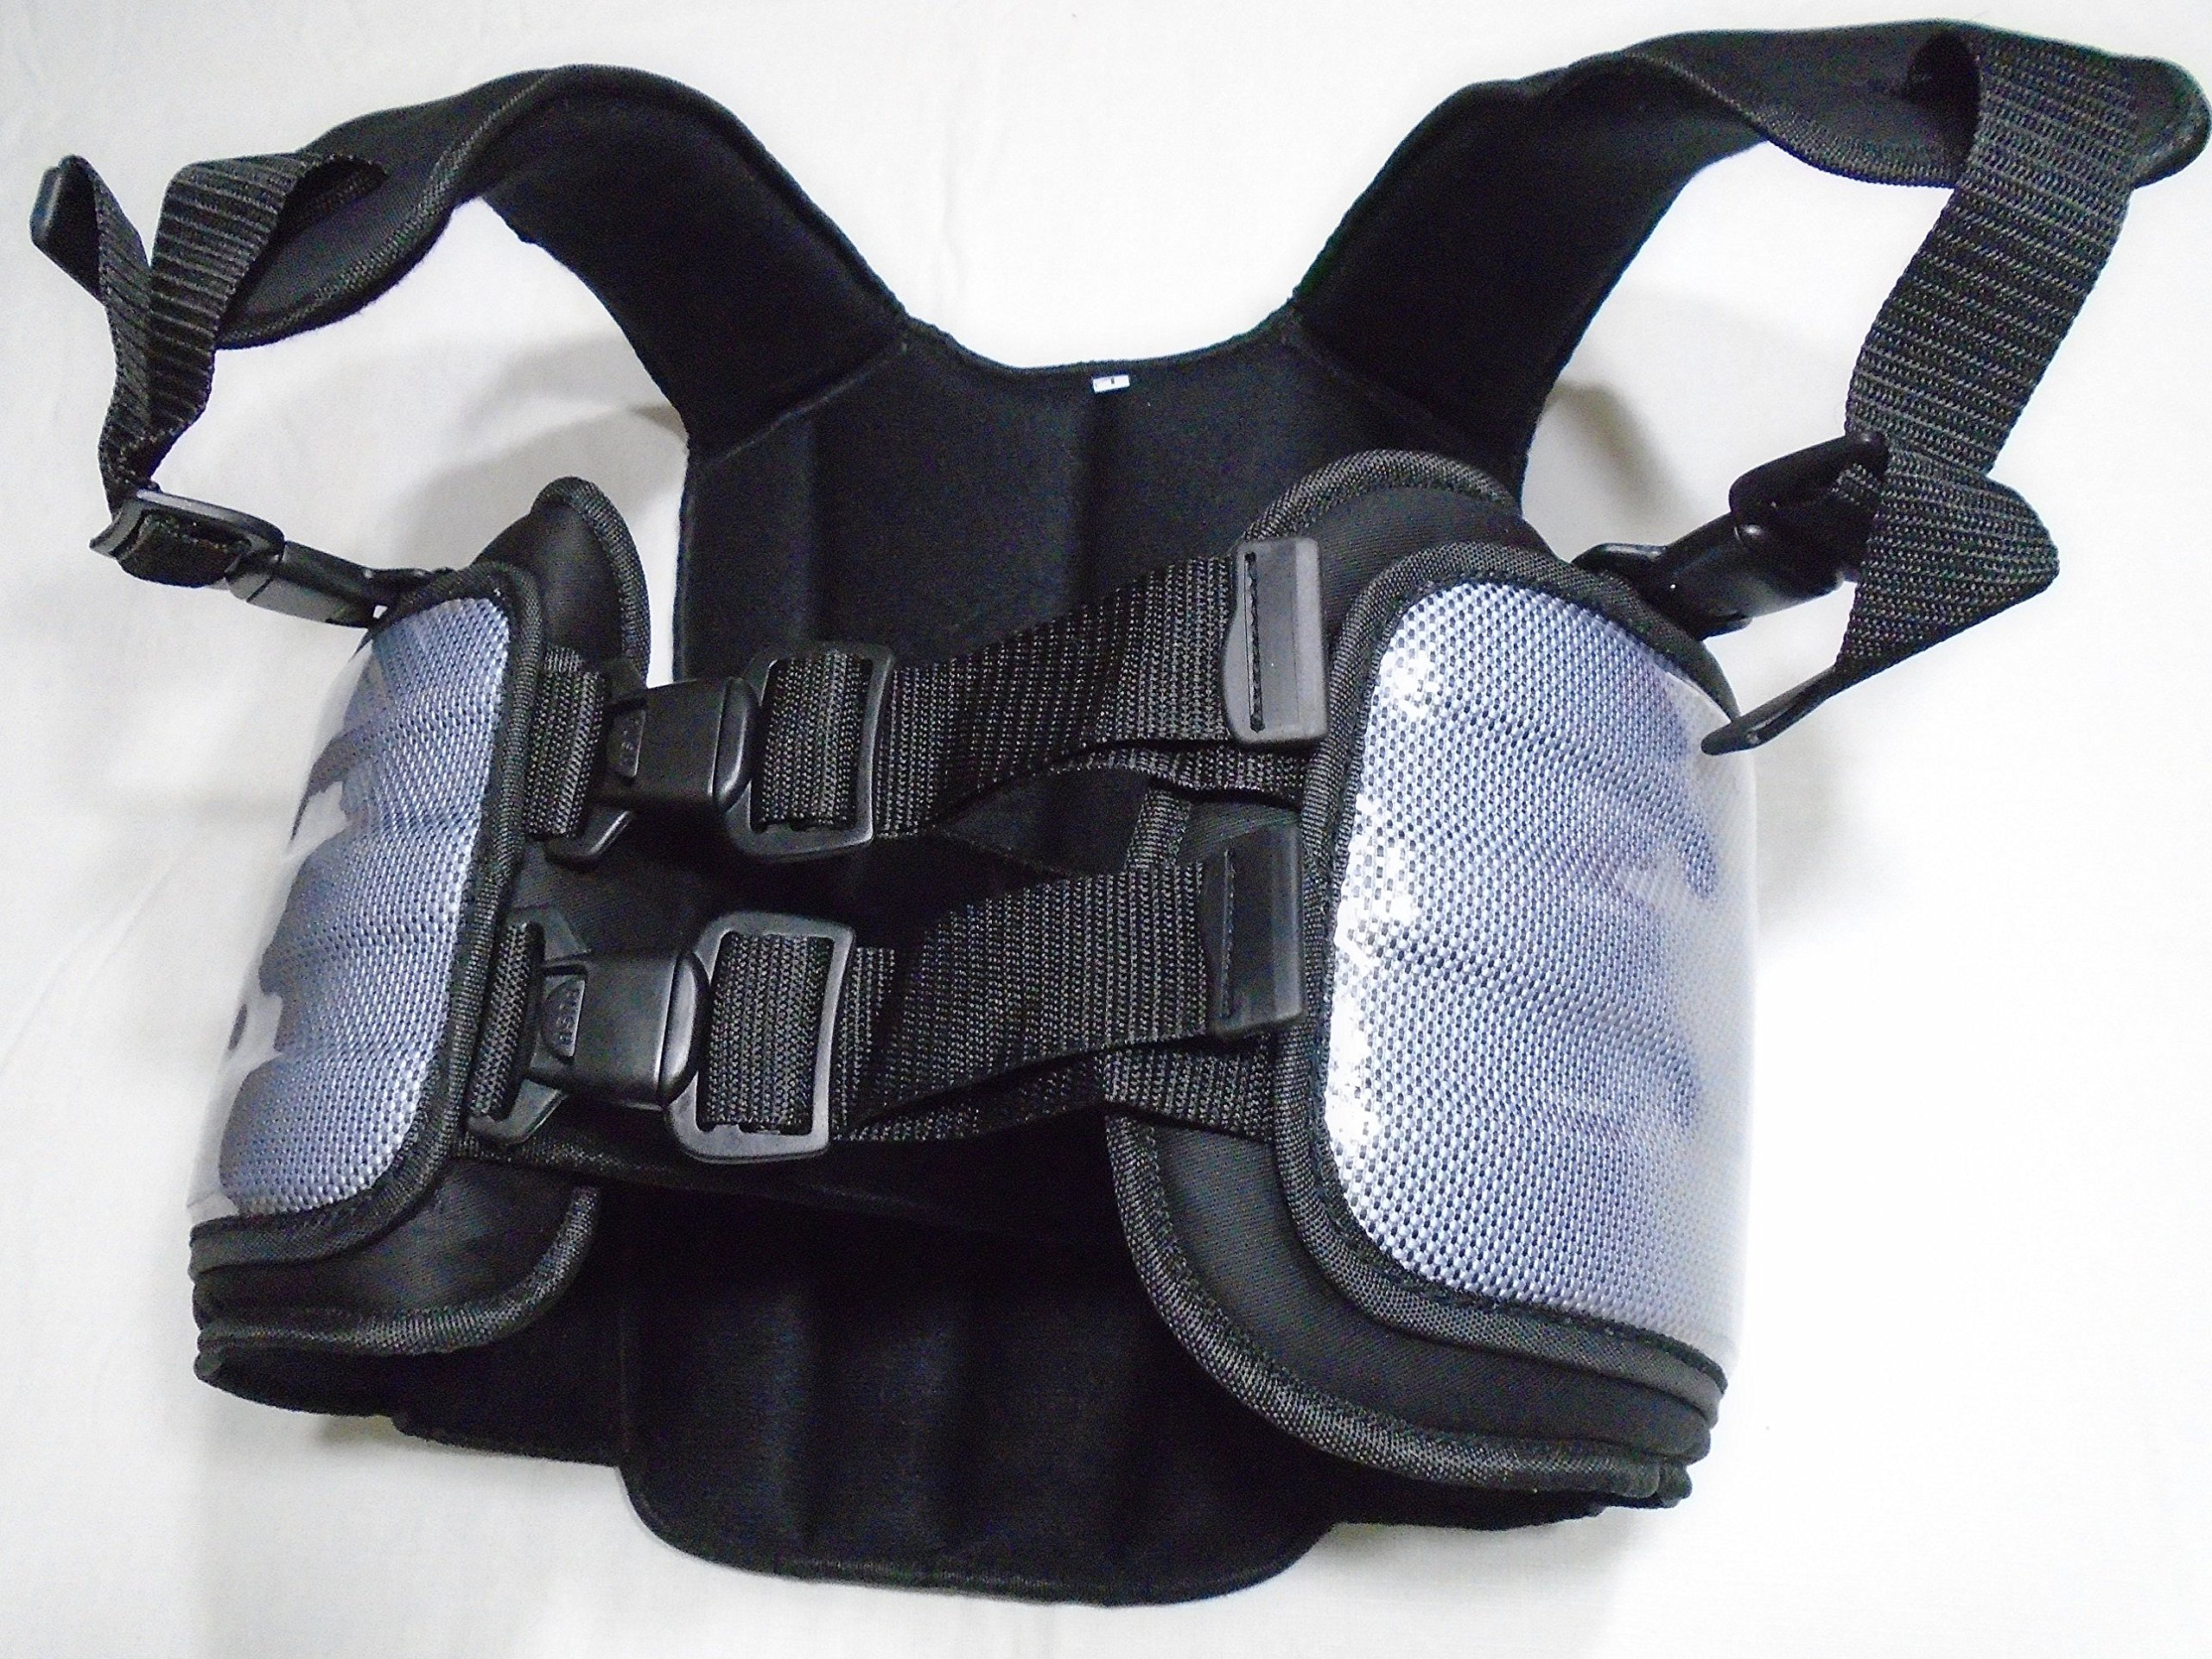 Cuircon Auto Racing Body Protectors, Go Kart Carbon Rib Vest/Riders Safety Jackets/body Armour (Large, Silver/Black)